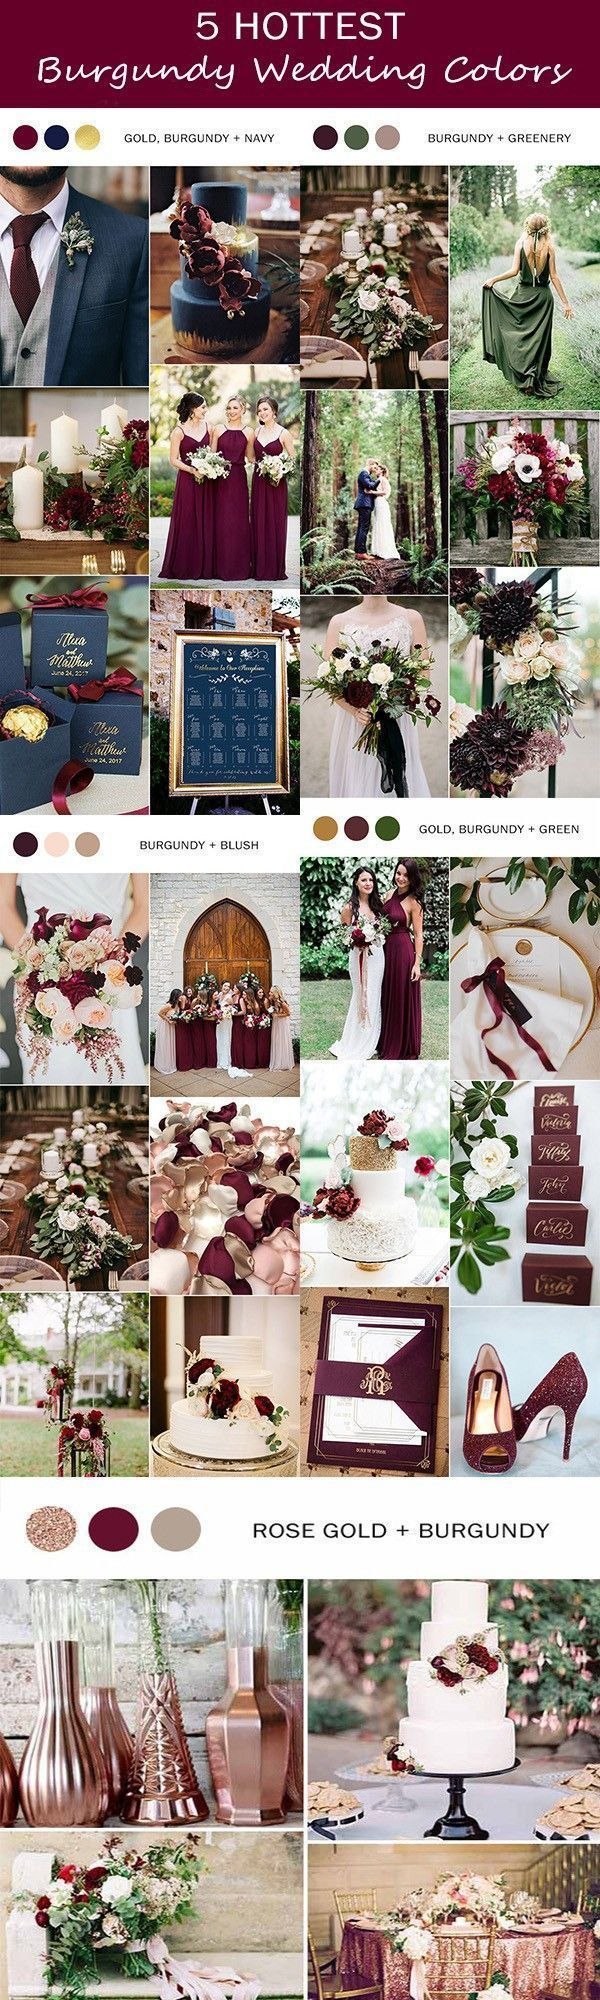 Wedding decorations teal and purple october 2018  best Burgundy wedding flowers images on Pinterest  Wedding